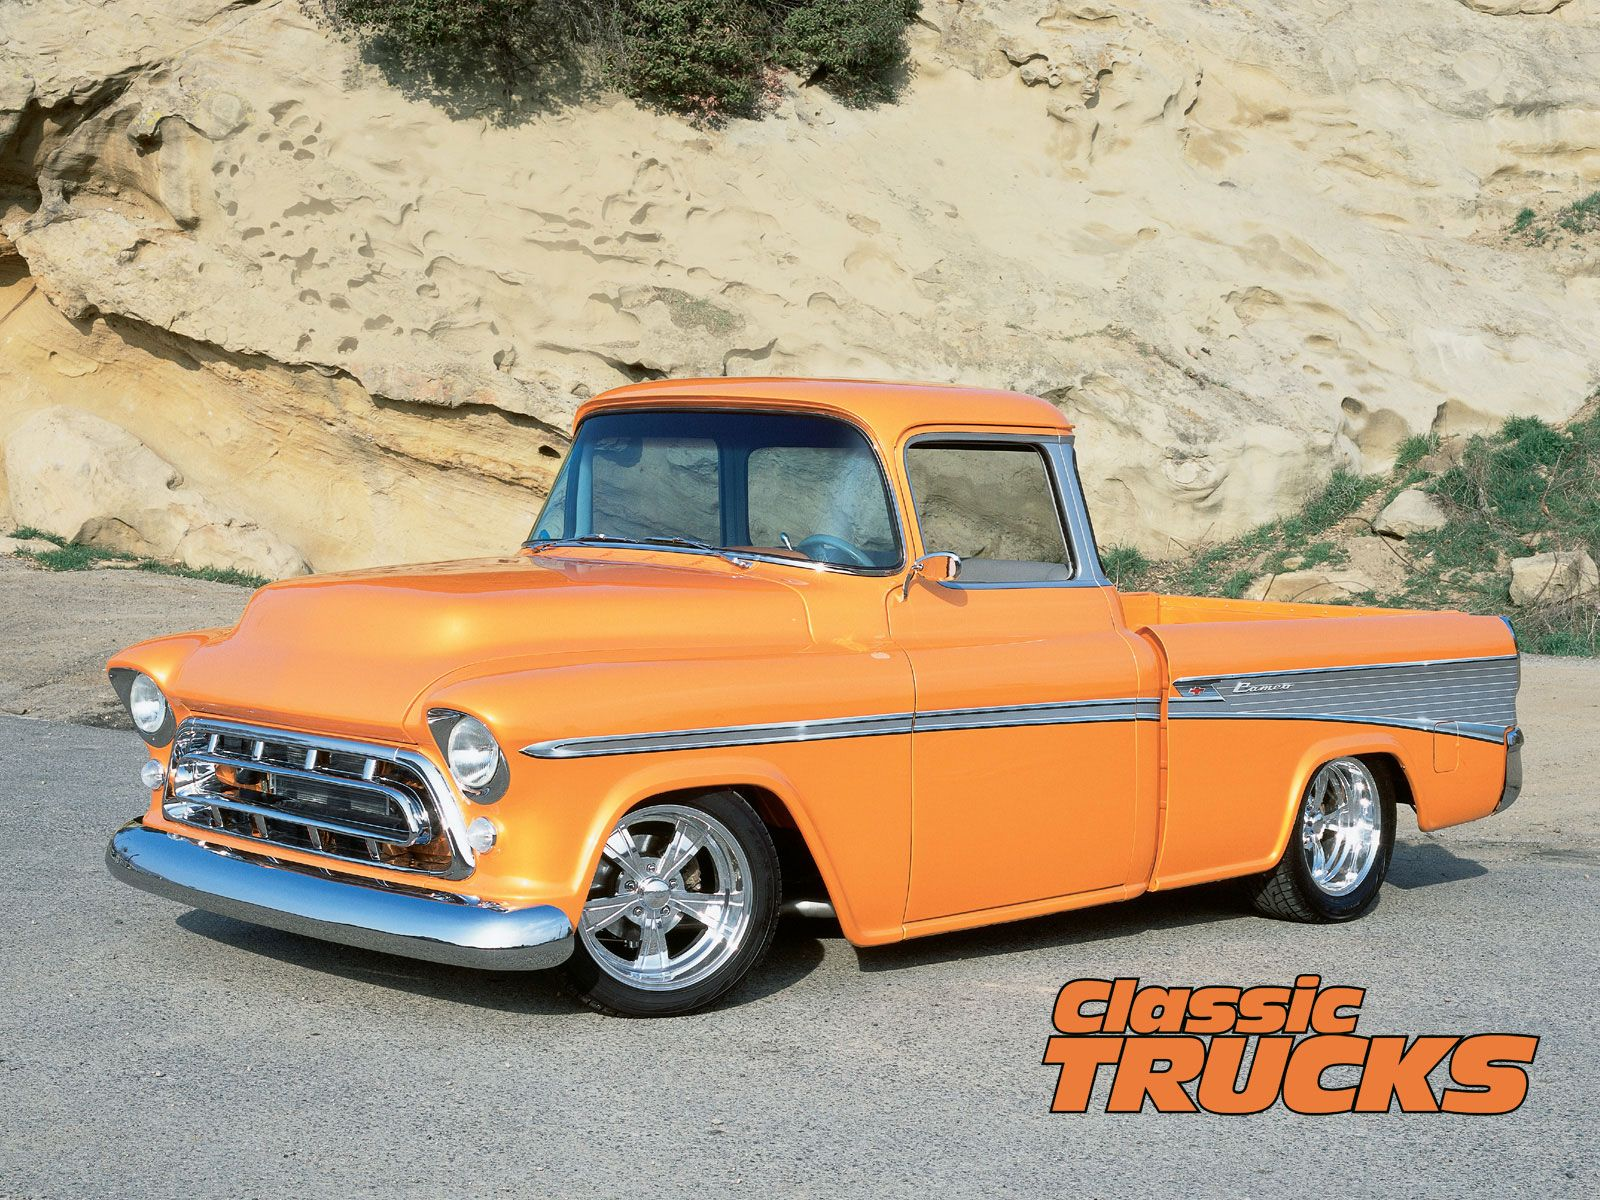 Classic Truck HD Background Wallpapers 9247   Amazing 1600x1200